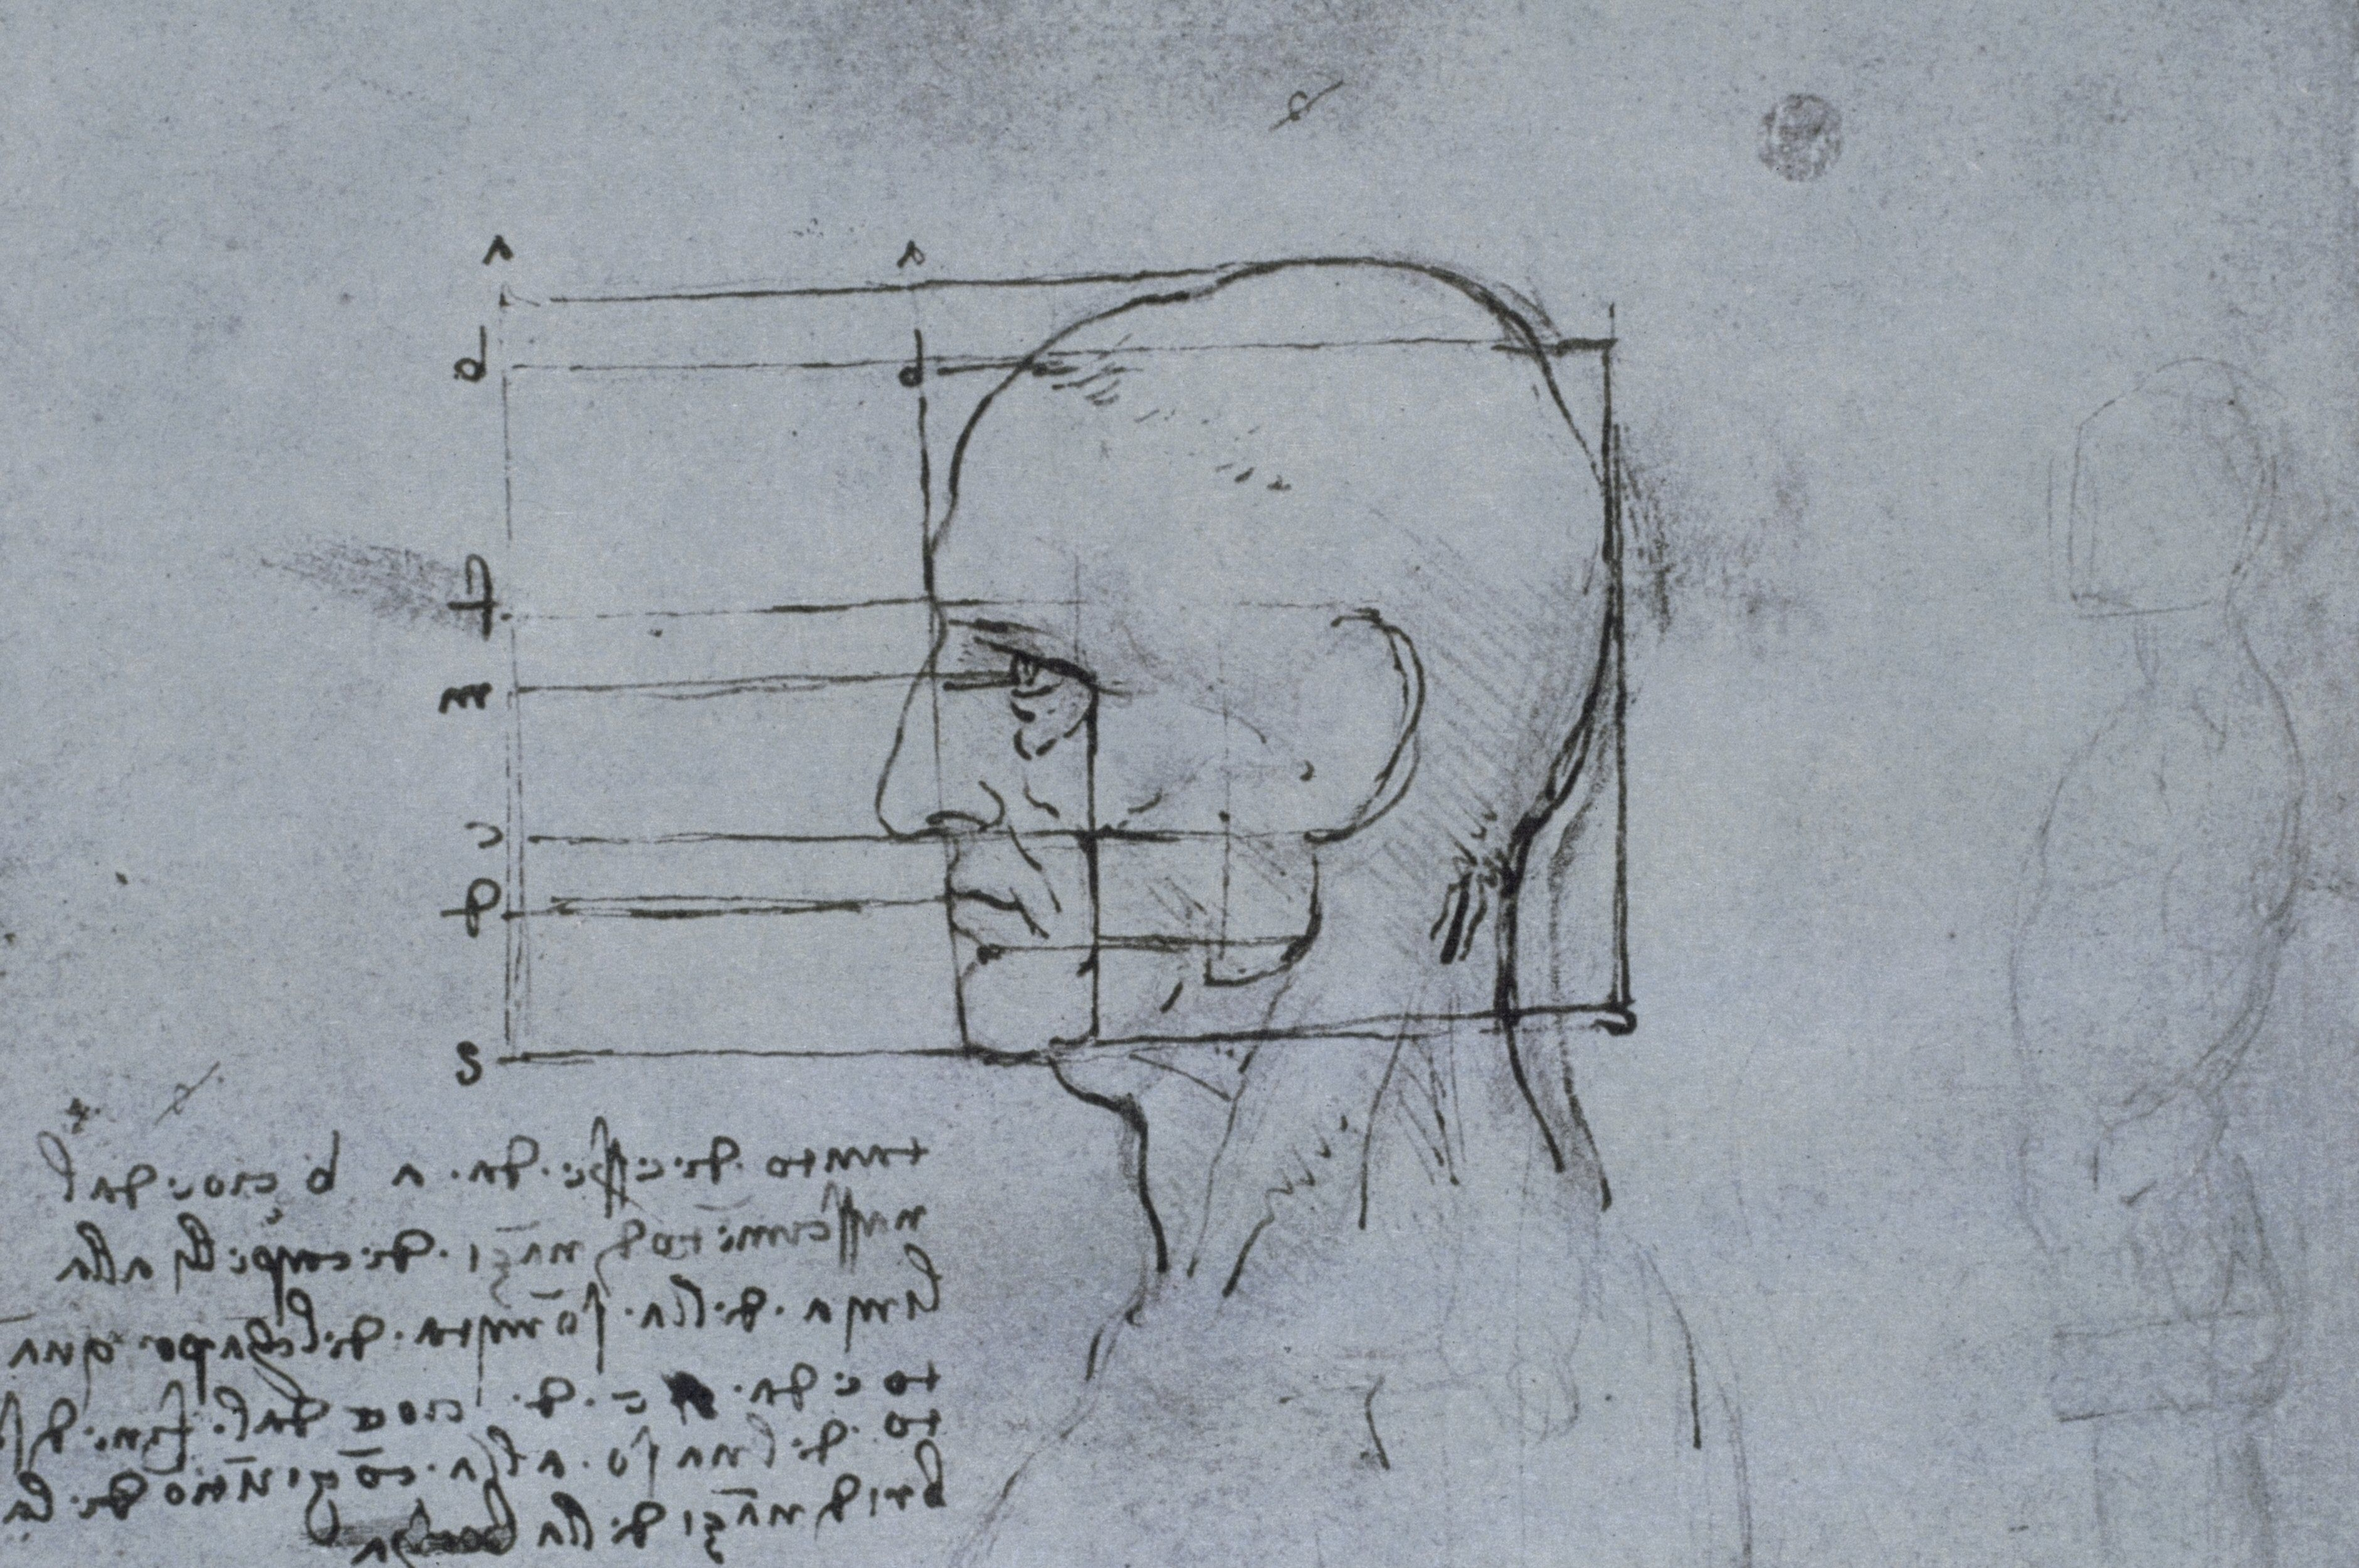 drawing of side view of a man's head with lines graphing proportions and Italian writing in notebook